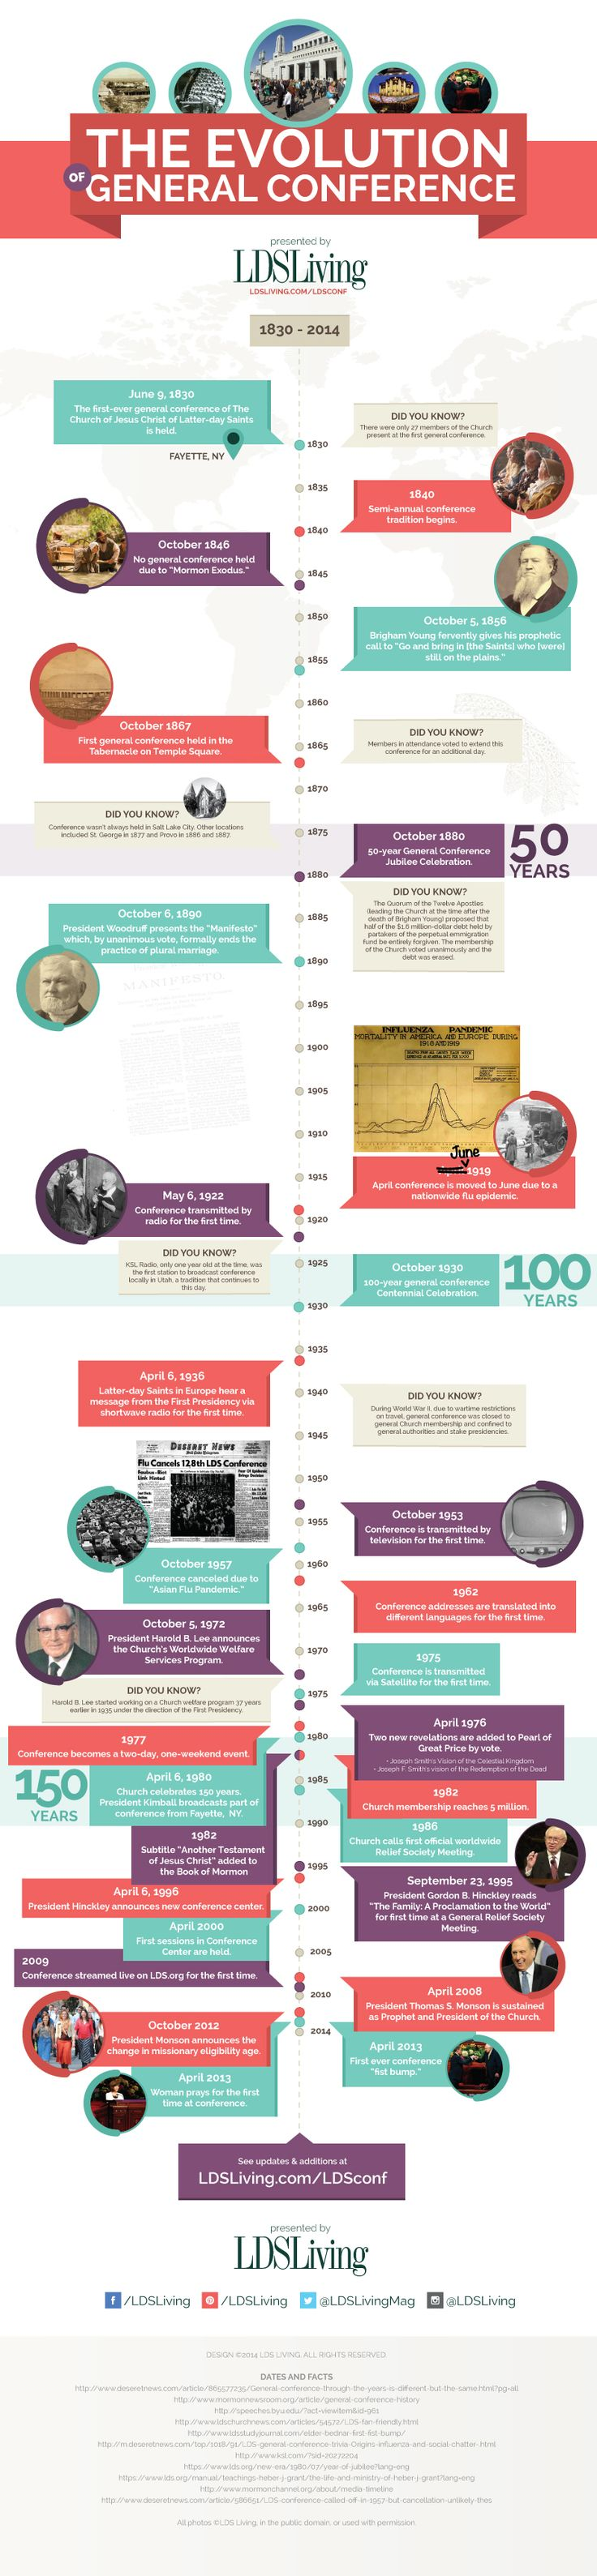 Check out this timeline of historical interest about general conference http://facebook.com/pages/General-Conference-of-The-Church-of-Jesus-Christ-of-Latter-day-Saints/223271487682878 Learn and enjoy more http://gc.lds.org